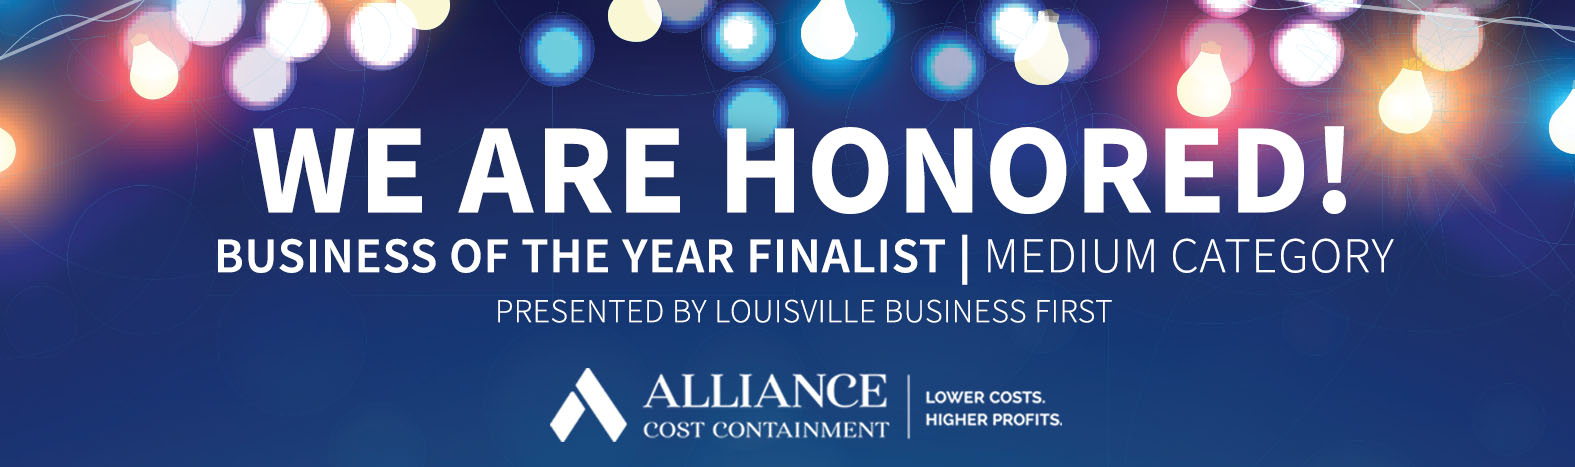 Business of the Year Alliance Cost Containment Louisville